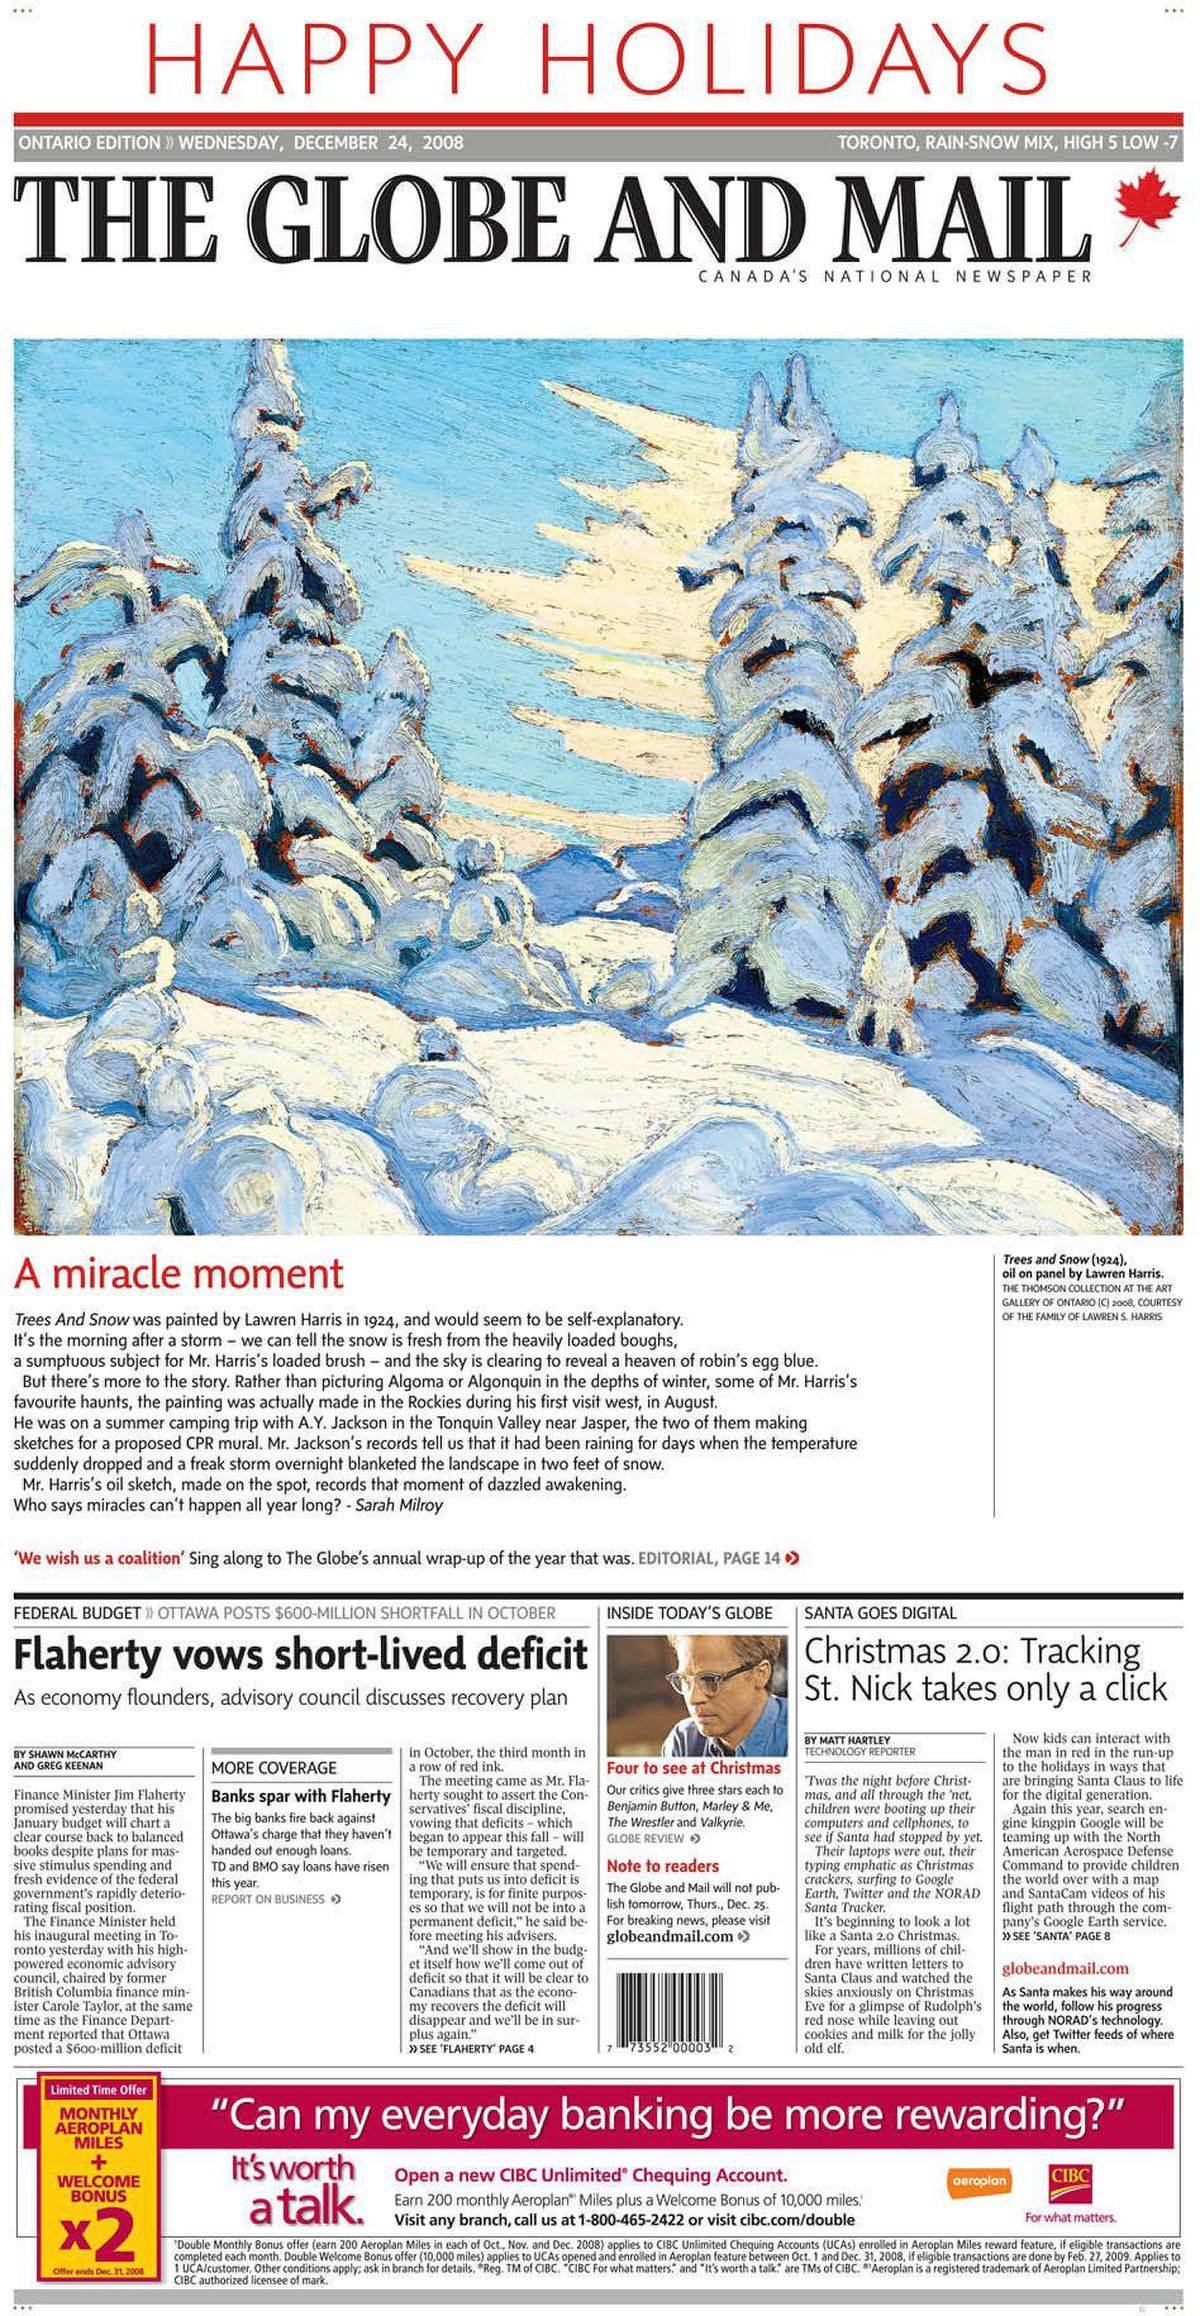 Cover of The Globe and Mail, Dec. 24, 2008